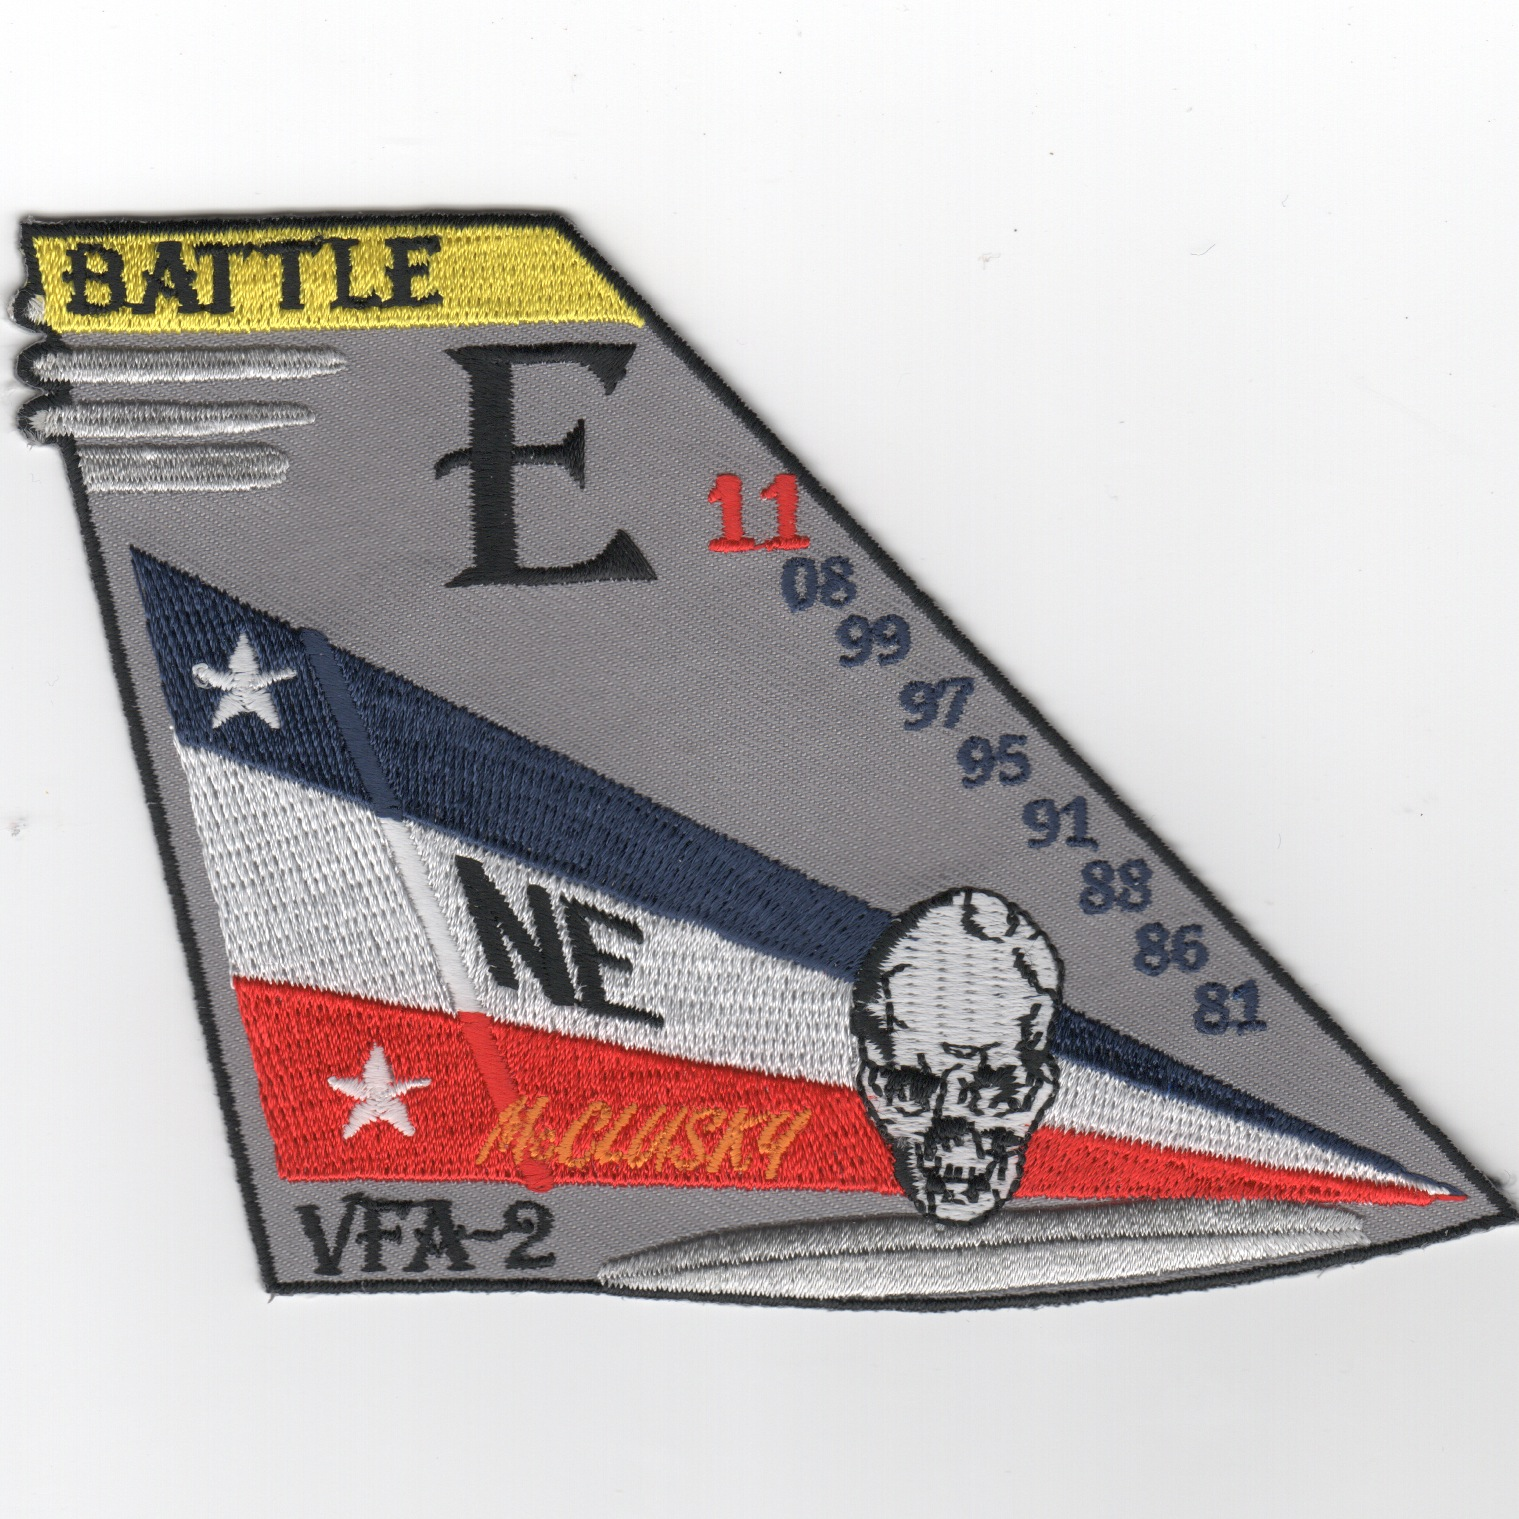 VFA-2 2011 Battle 'E' TailFin